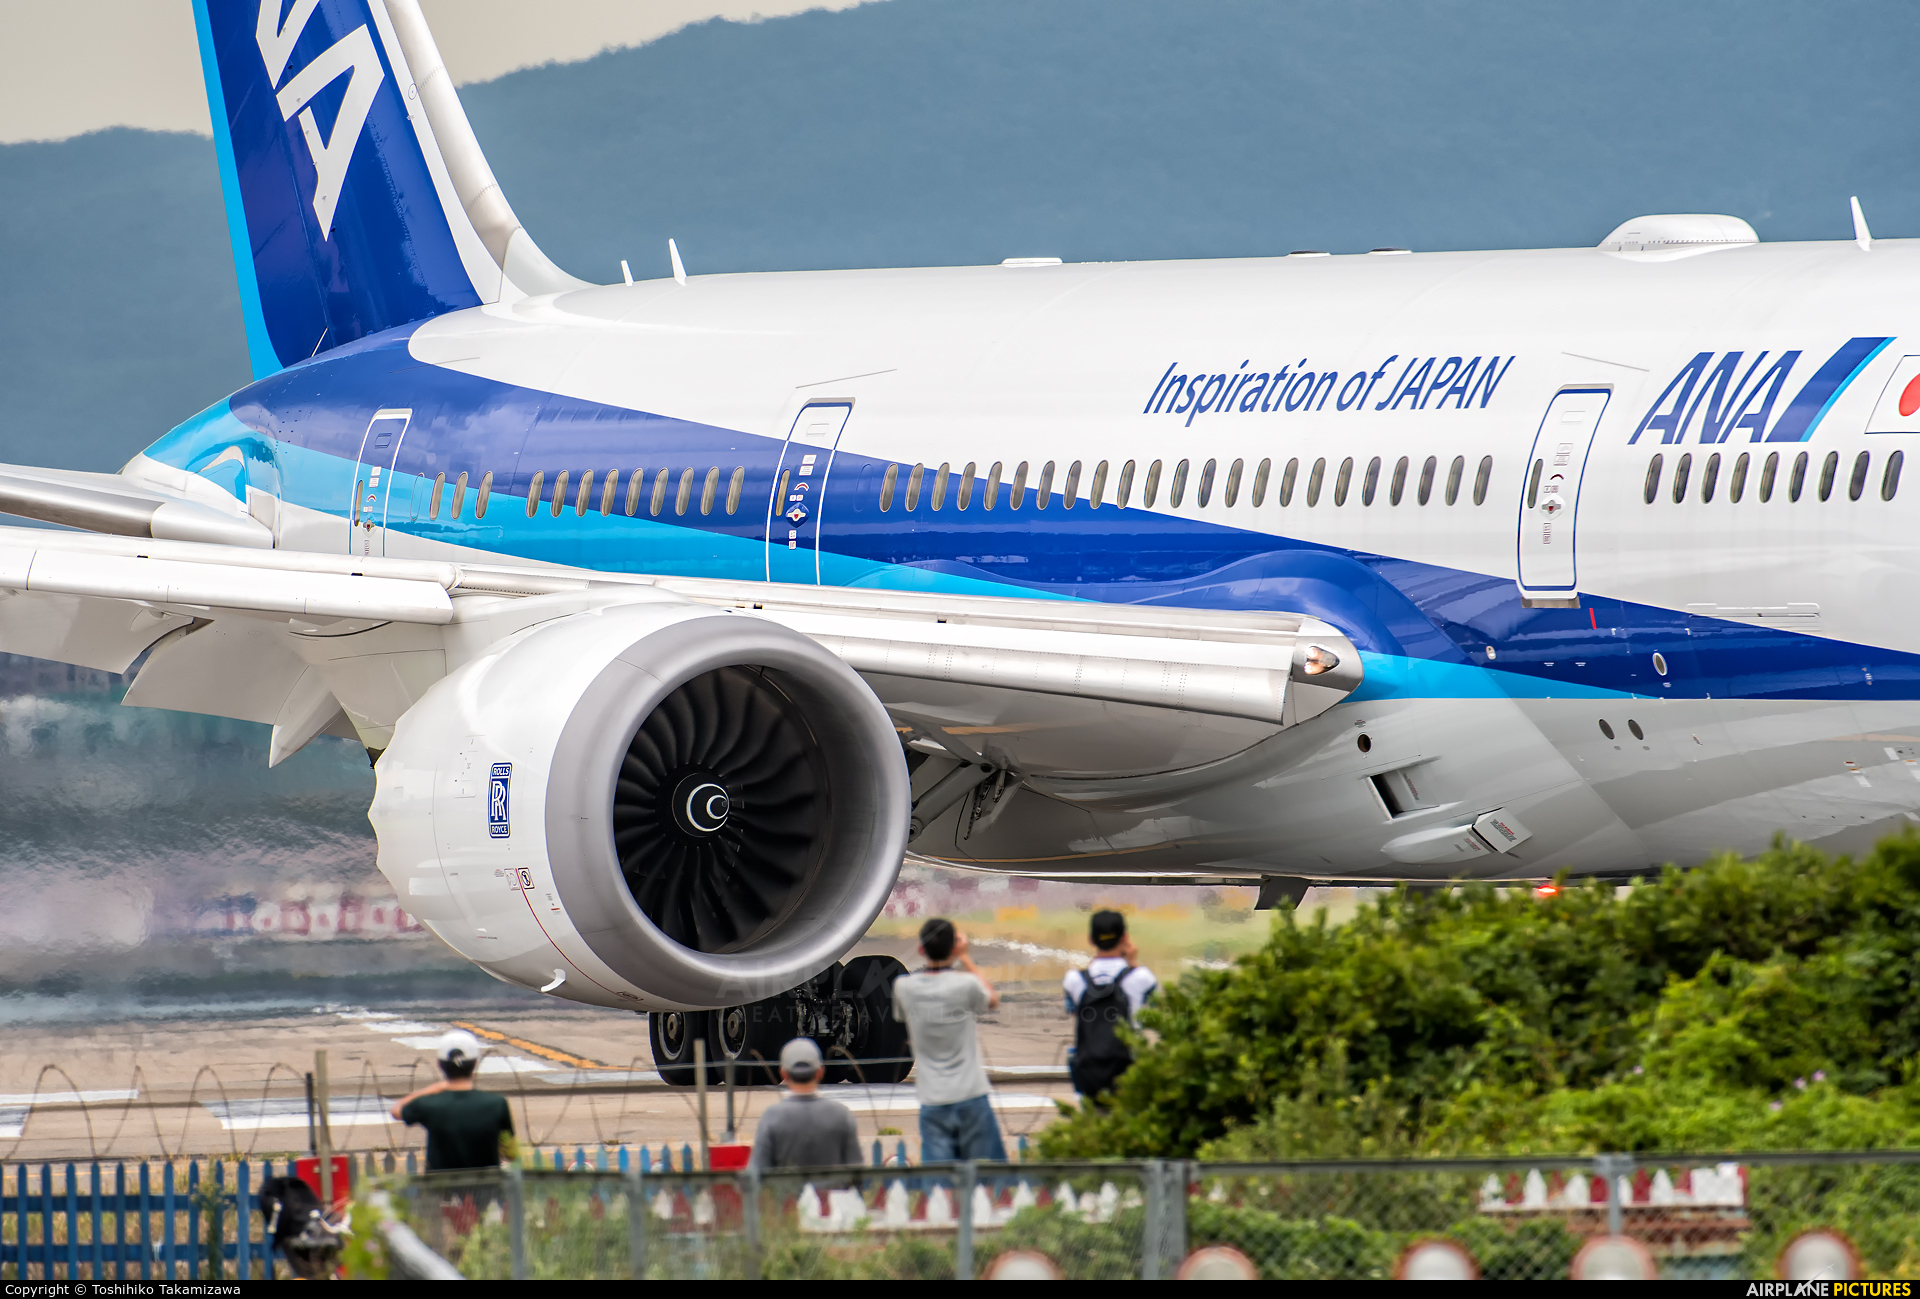 ANA - All Nippon Airways JA803A aircraft at Taipei - Sung Shan